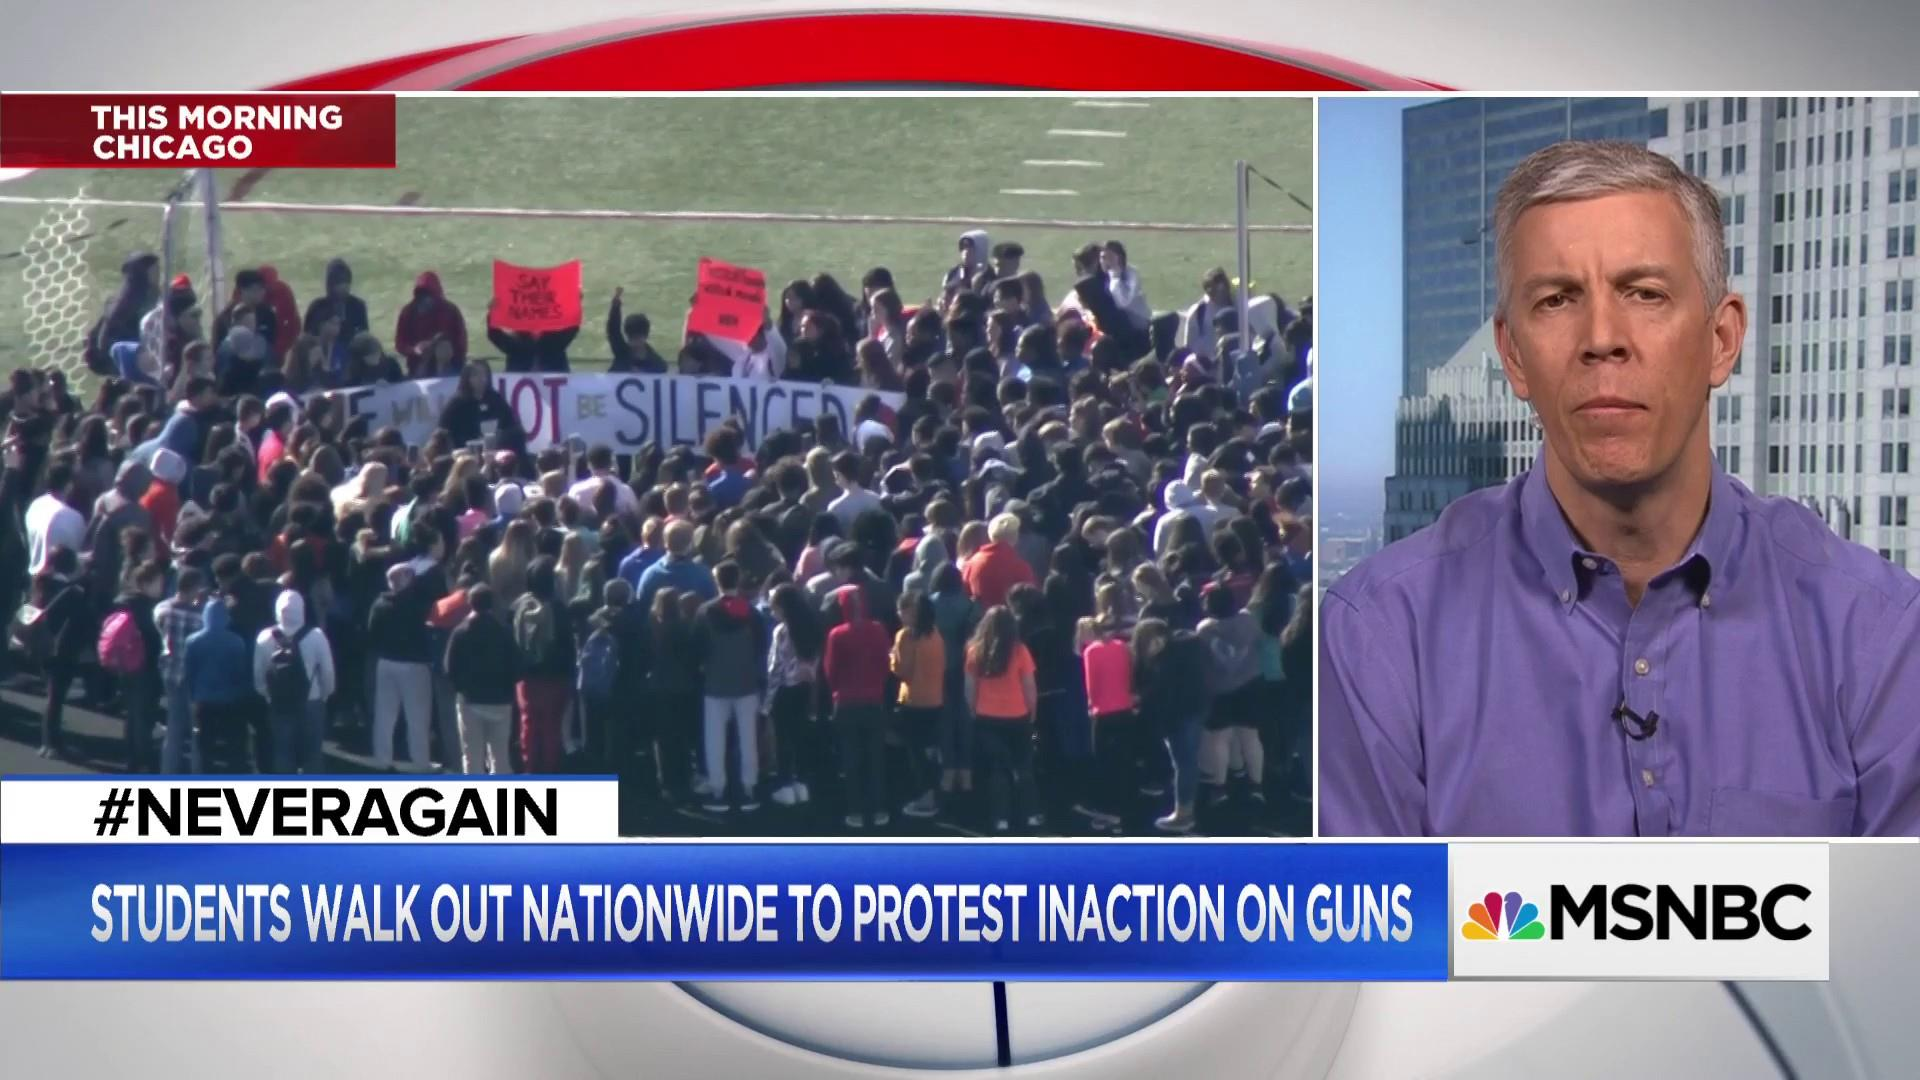 Chicago students demand action on gun violence